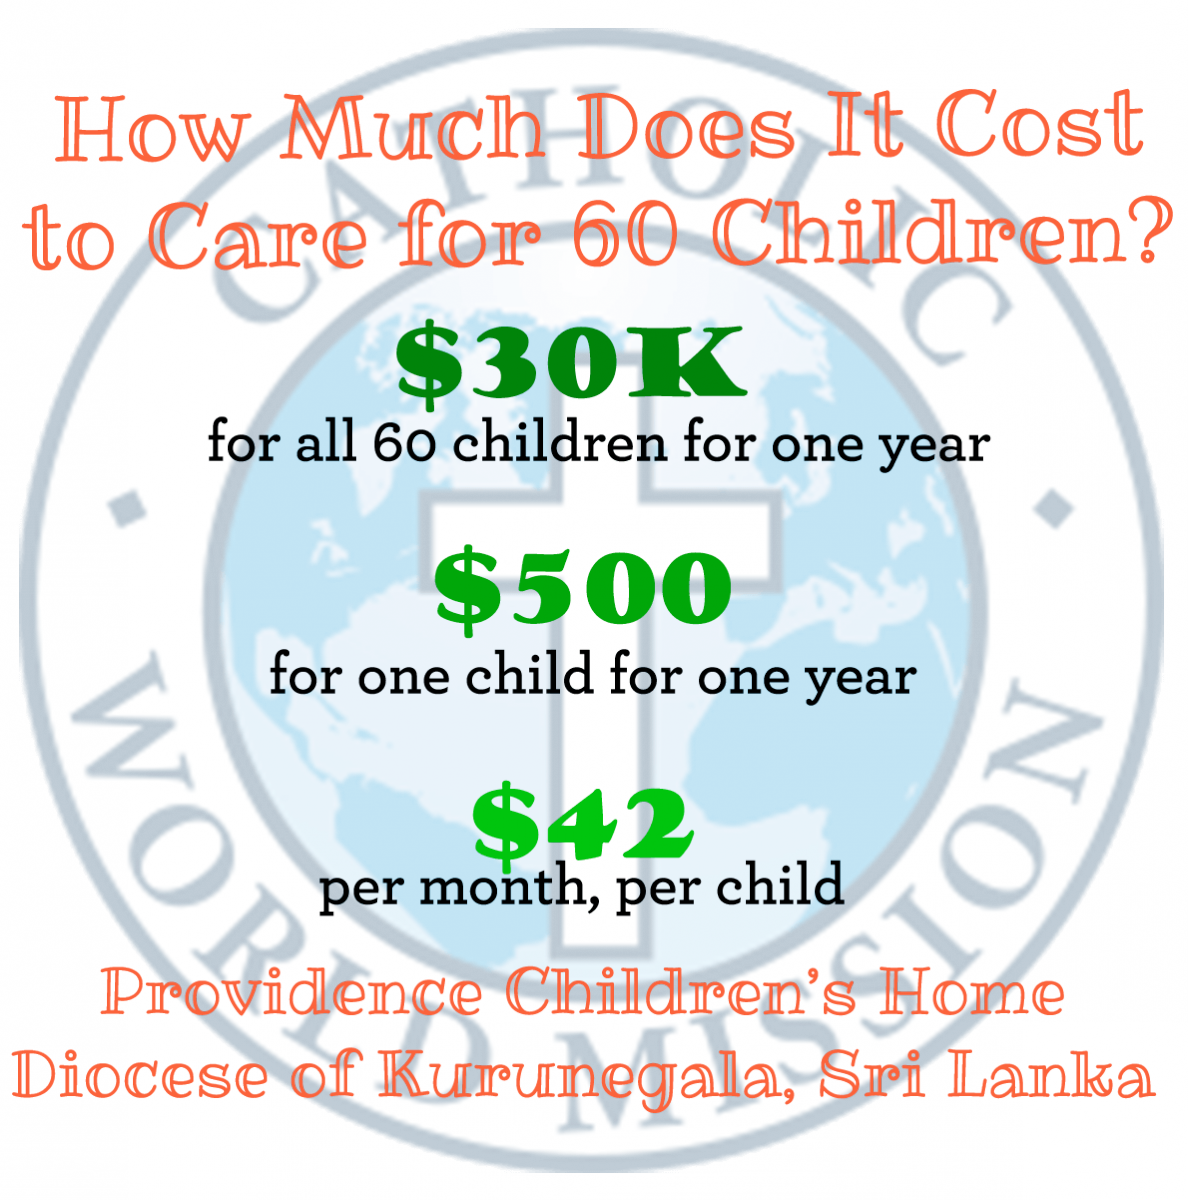 How much does it cost to care for 60 children?